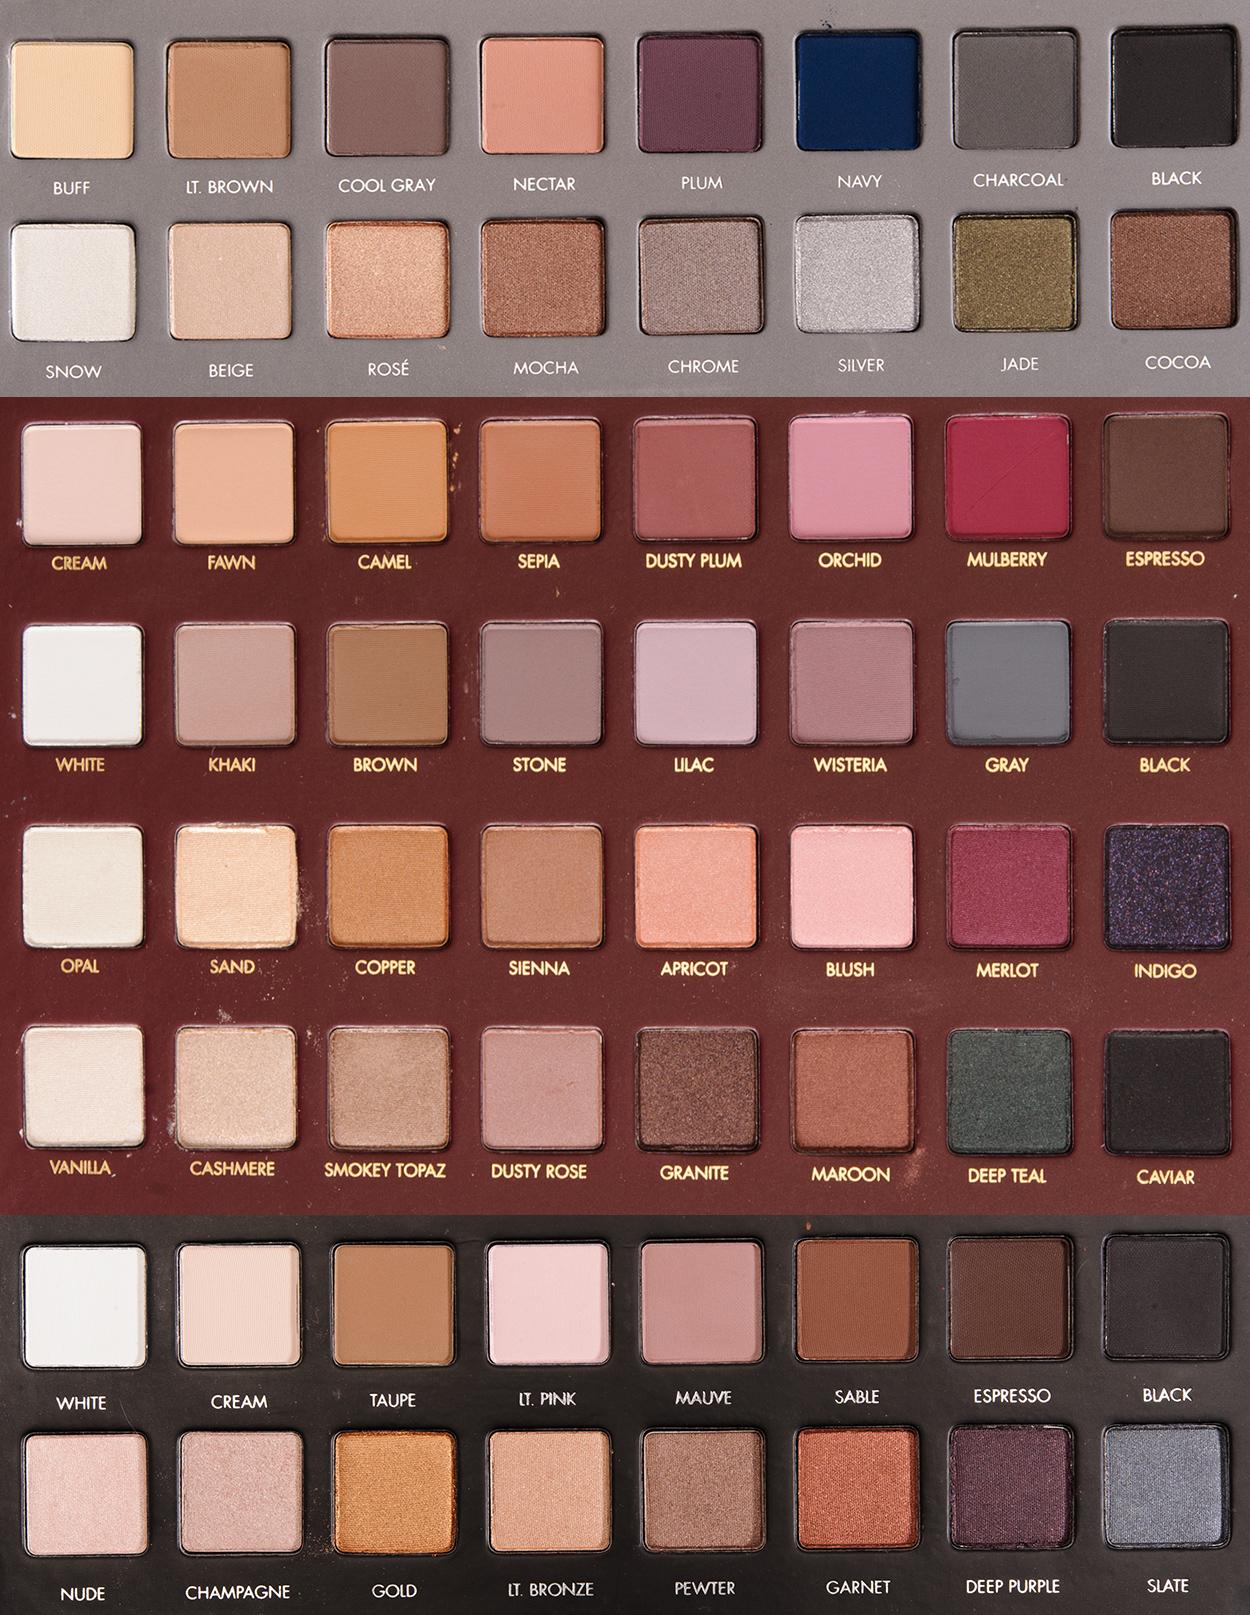 Lorac Pro To Go Professional Eye Collection Review: LORAC Mega Pro Palette Review, Photos, Swatches